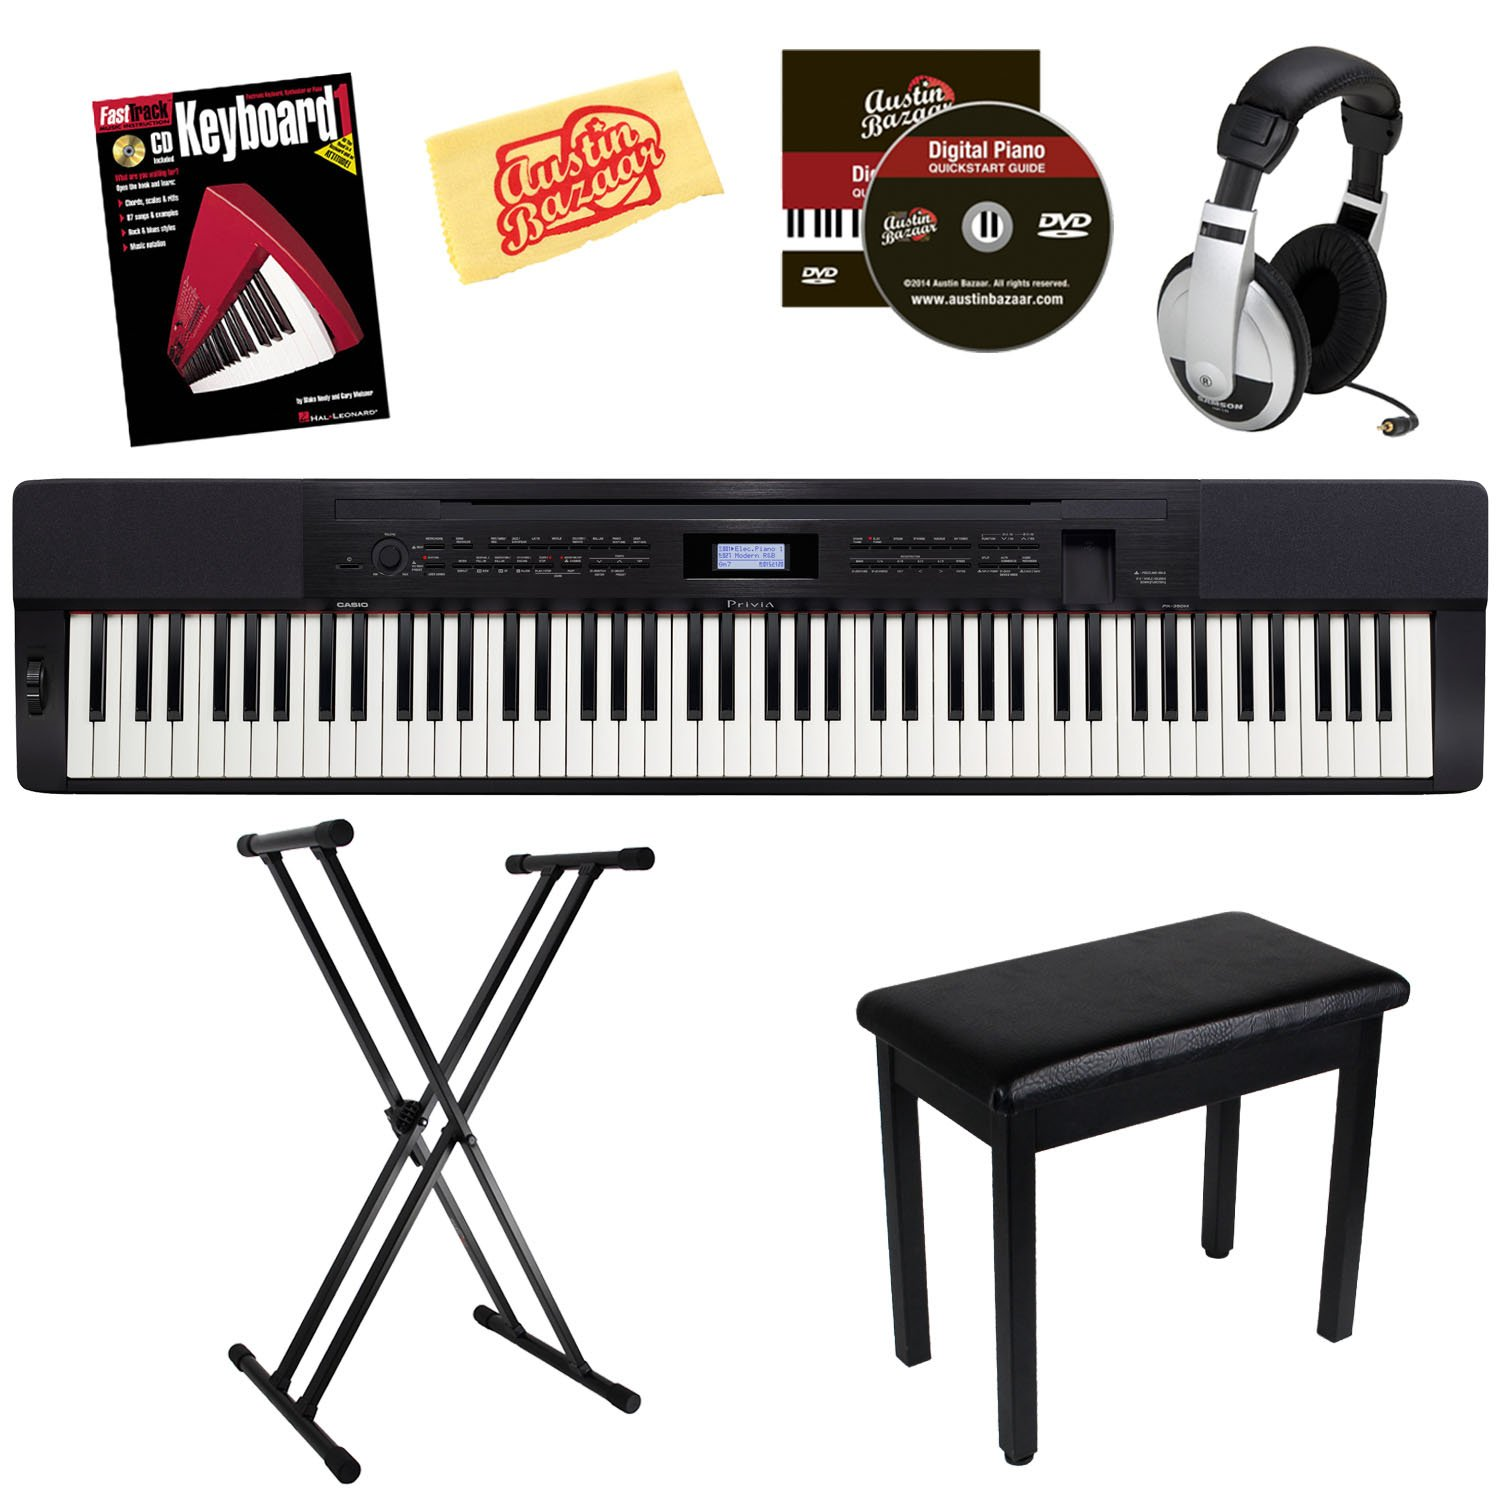 Casio Privia PX-350 88-Key Digital Piano Bundle with Bench, Stand, Headphones, and Instructional Book - Black by Casio